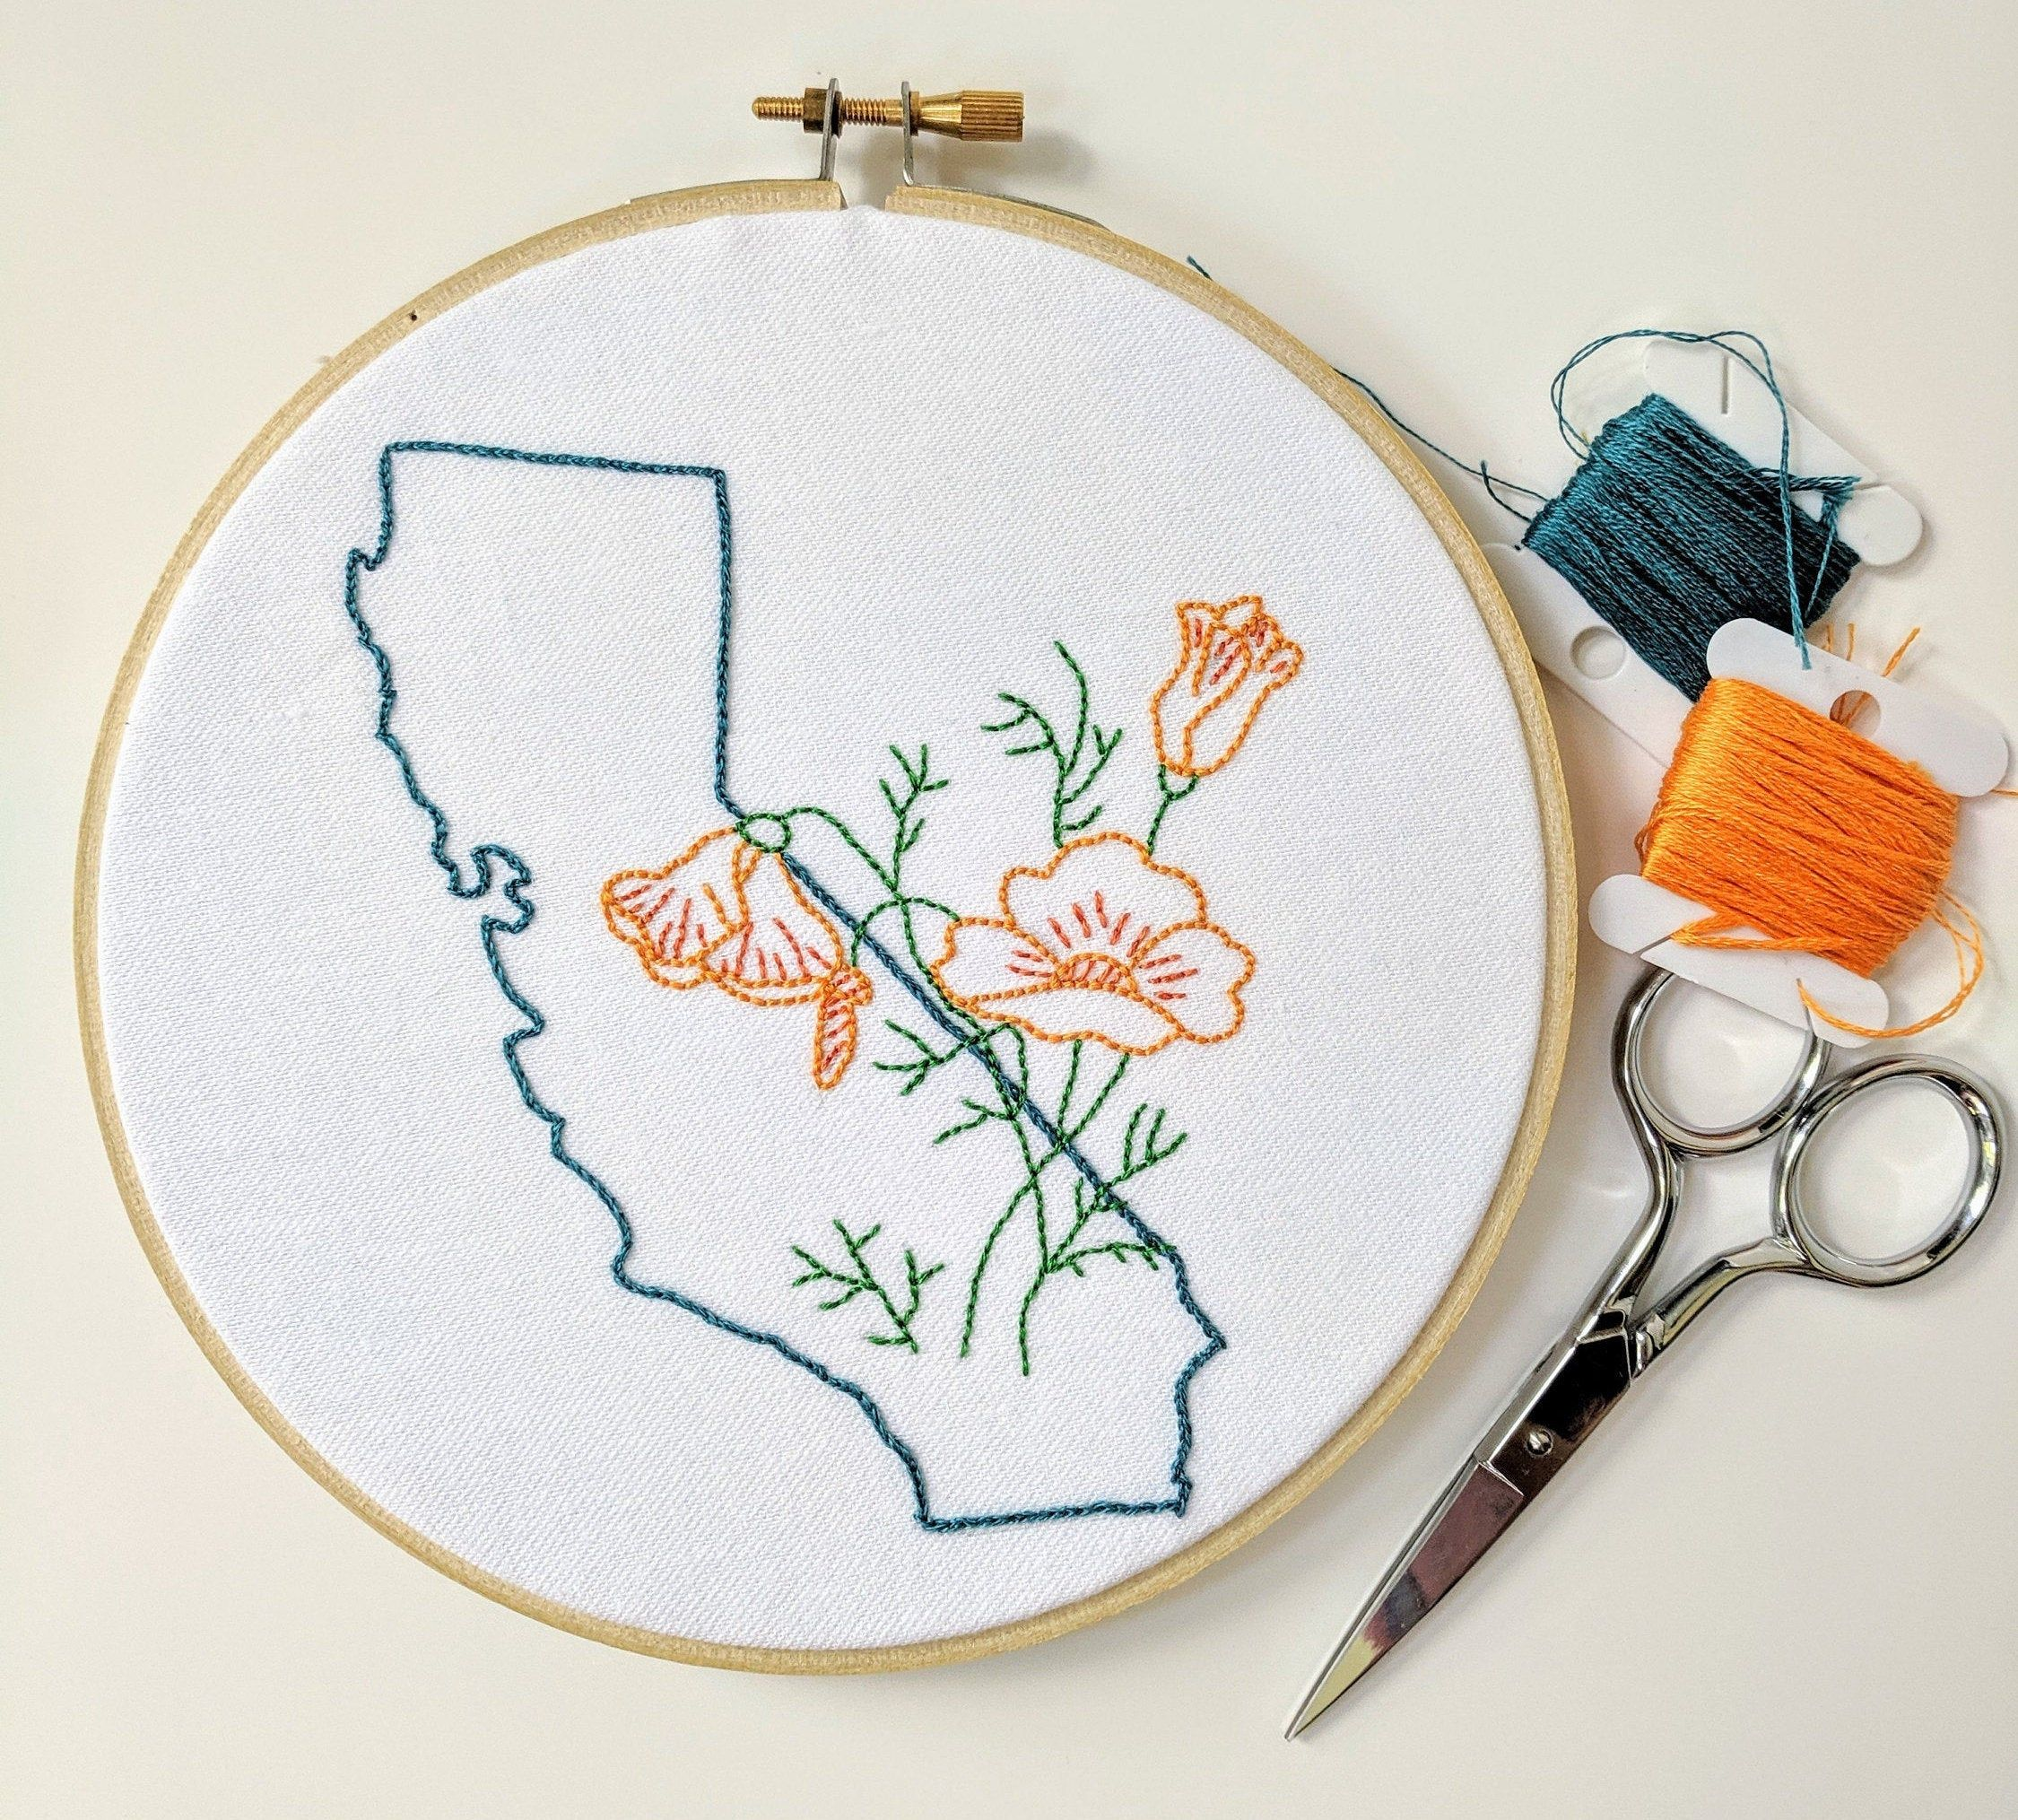 Digital Hand Embroidery Pattern I State of California Outline with Poppies I Easy Beginner Pattern